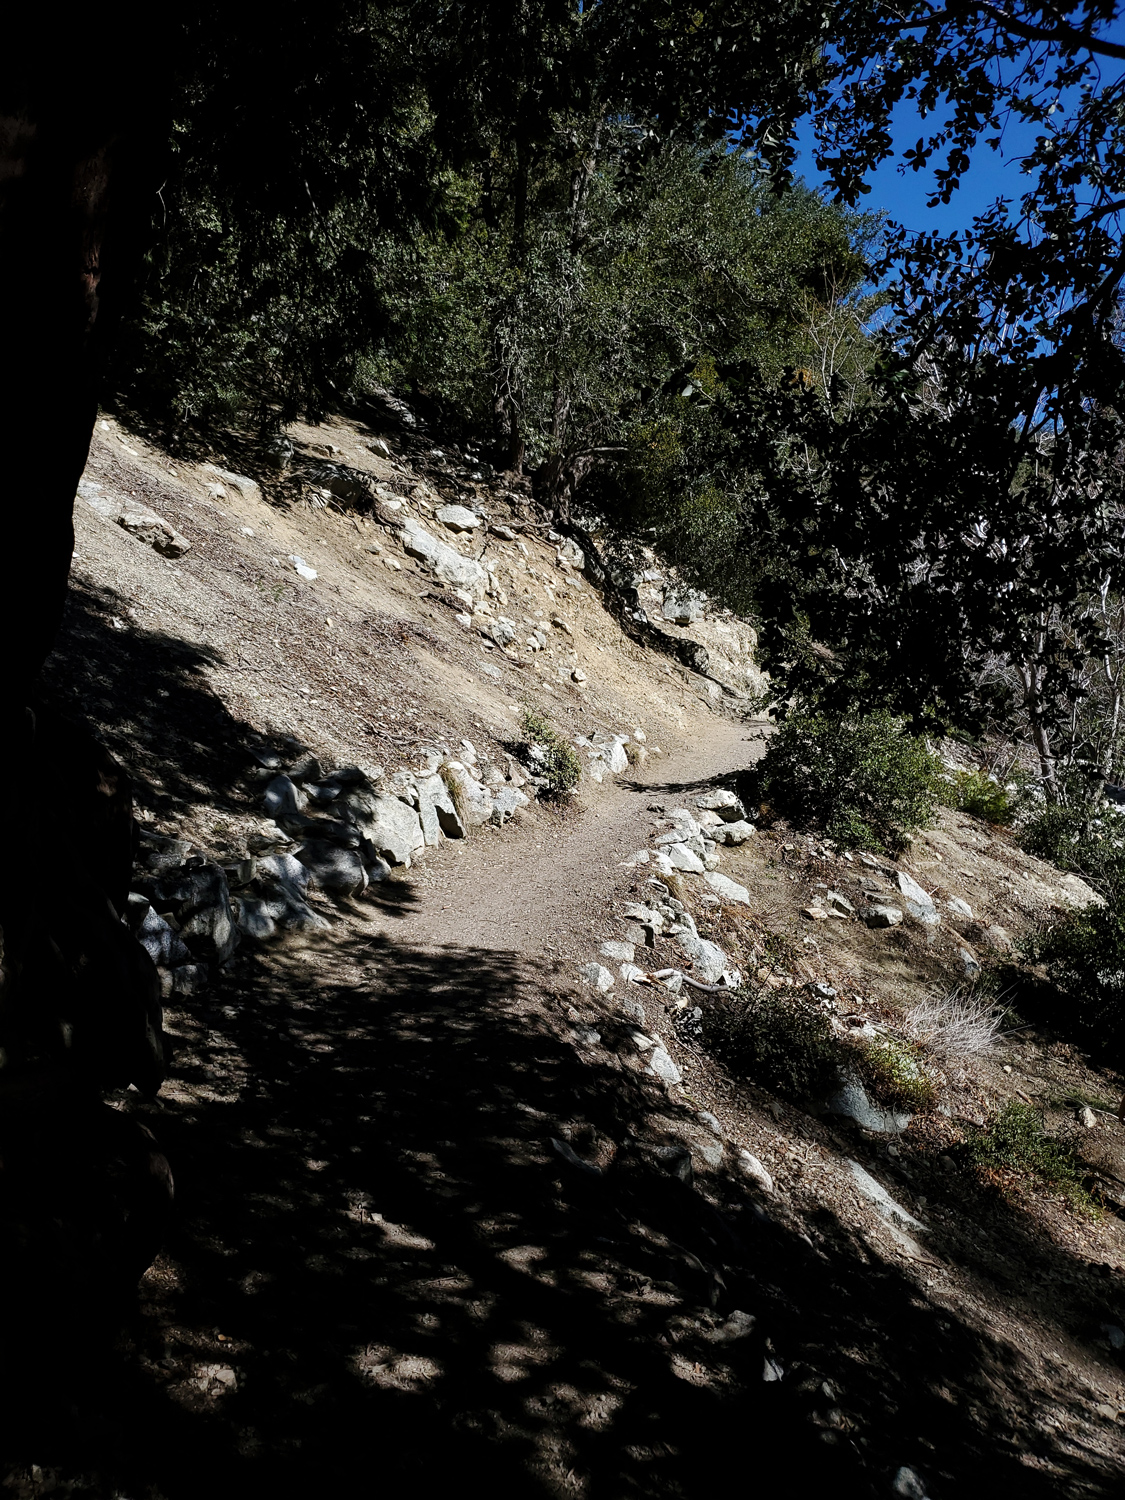 Portions of the Icehouse Canyon Trail were completely dry and around 65 degrees